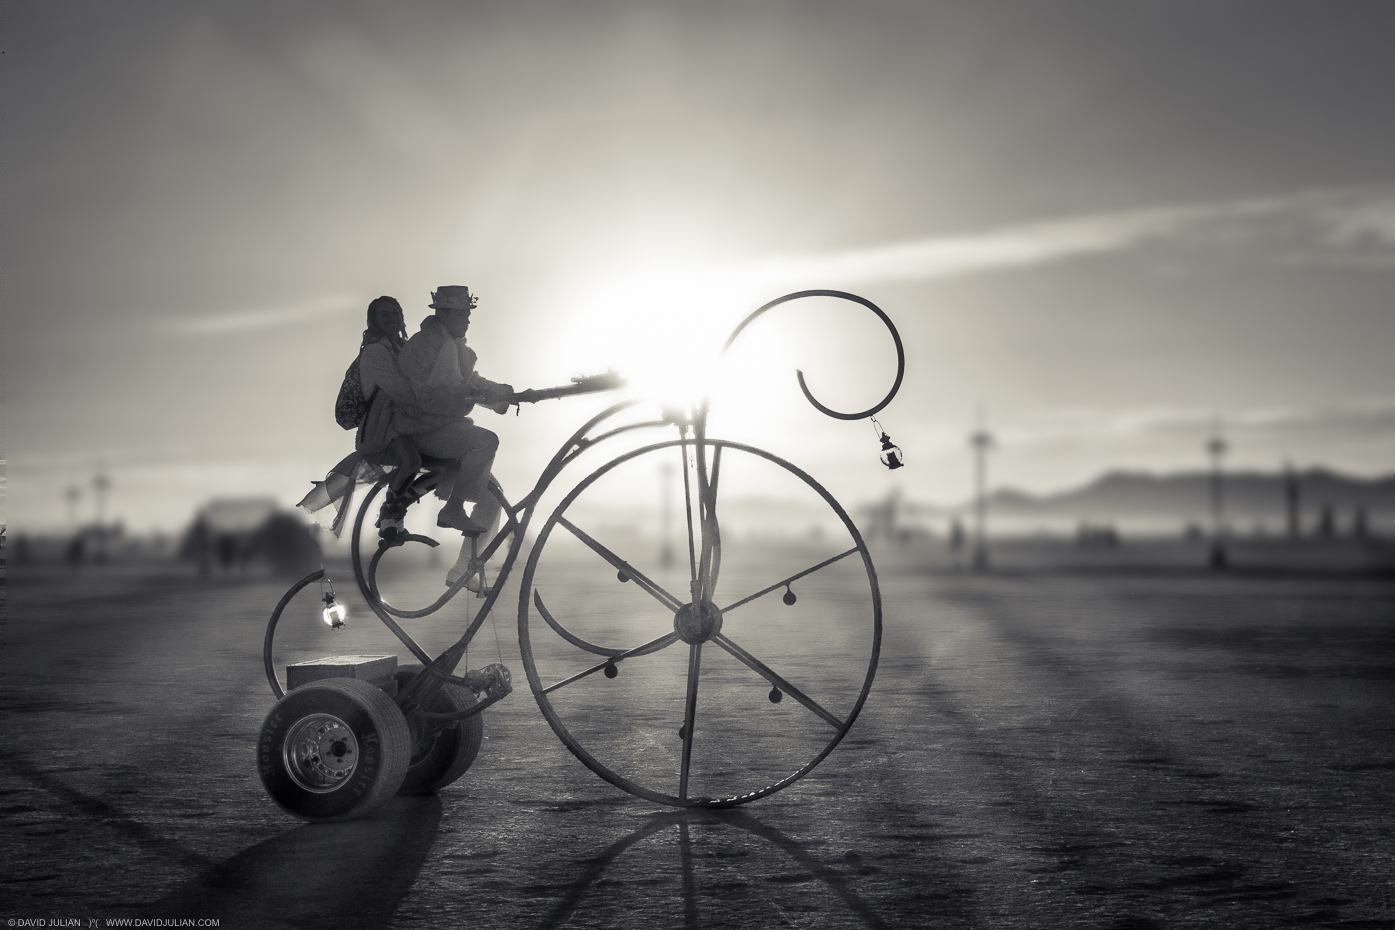 29Burning Man 2015- Giant Tricycle 1401-APF